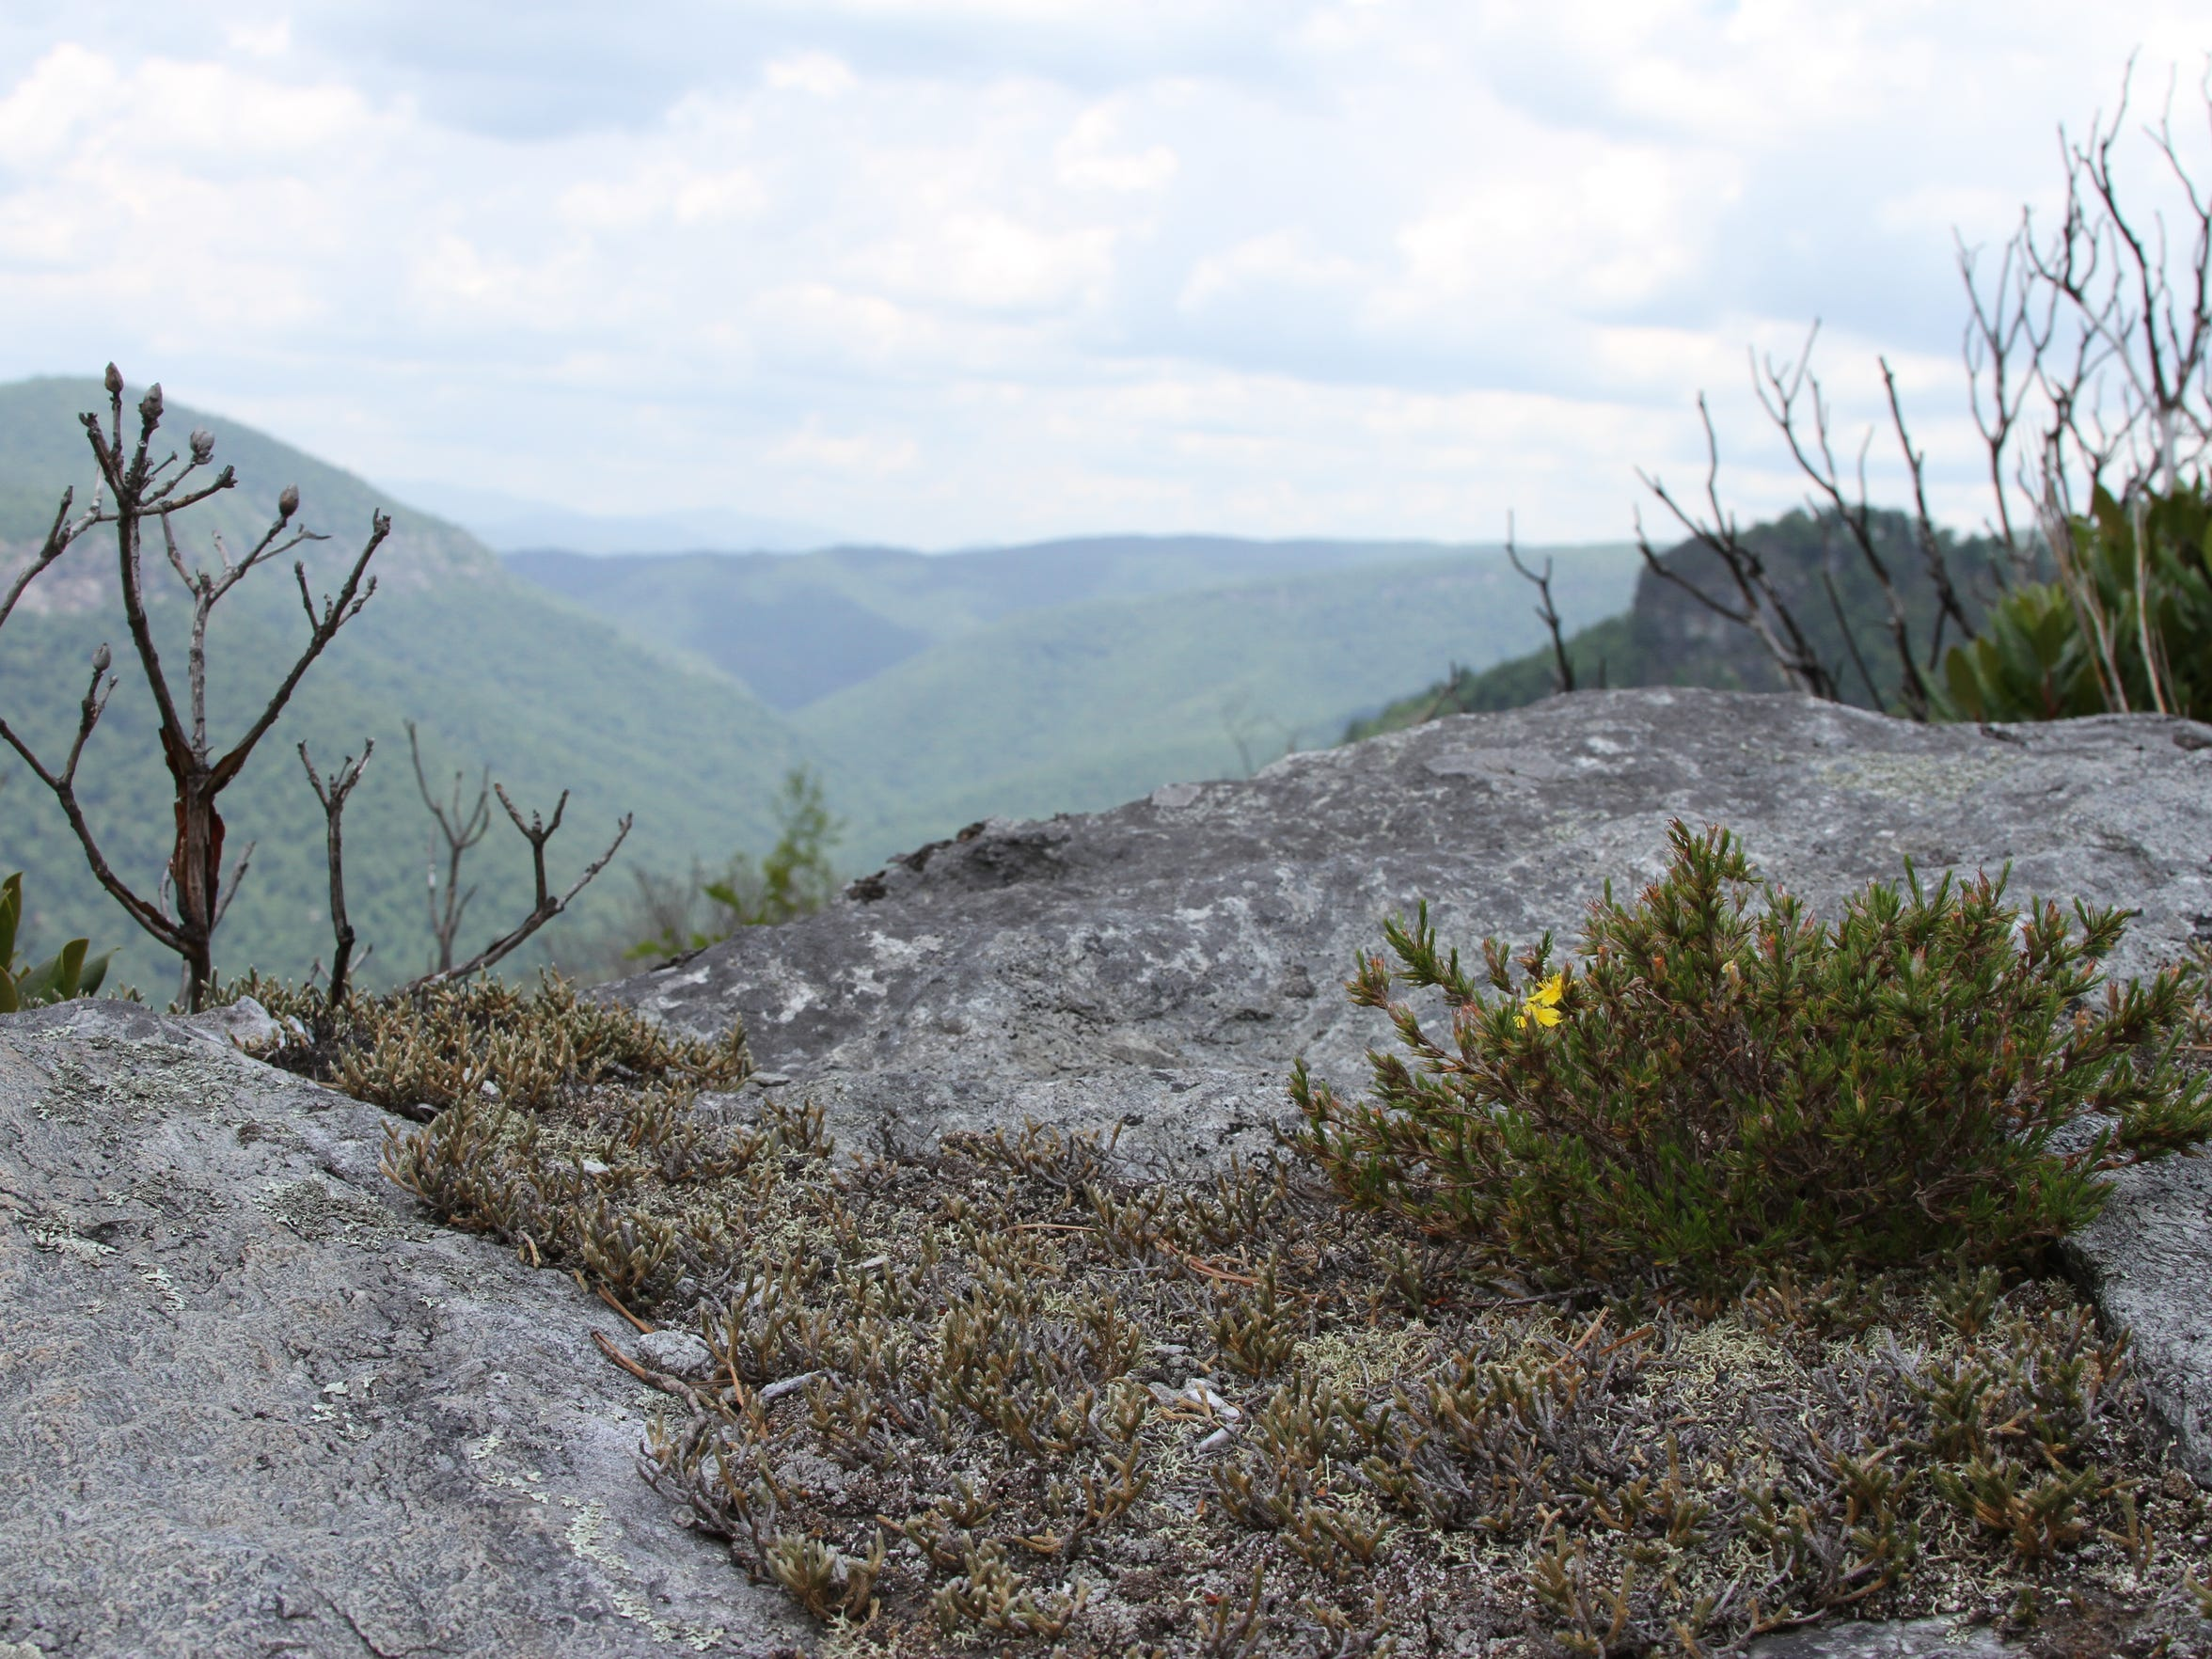 Mountain golden heather is an endangered plant found in high elevations of Western North Carolina.